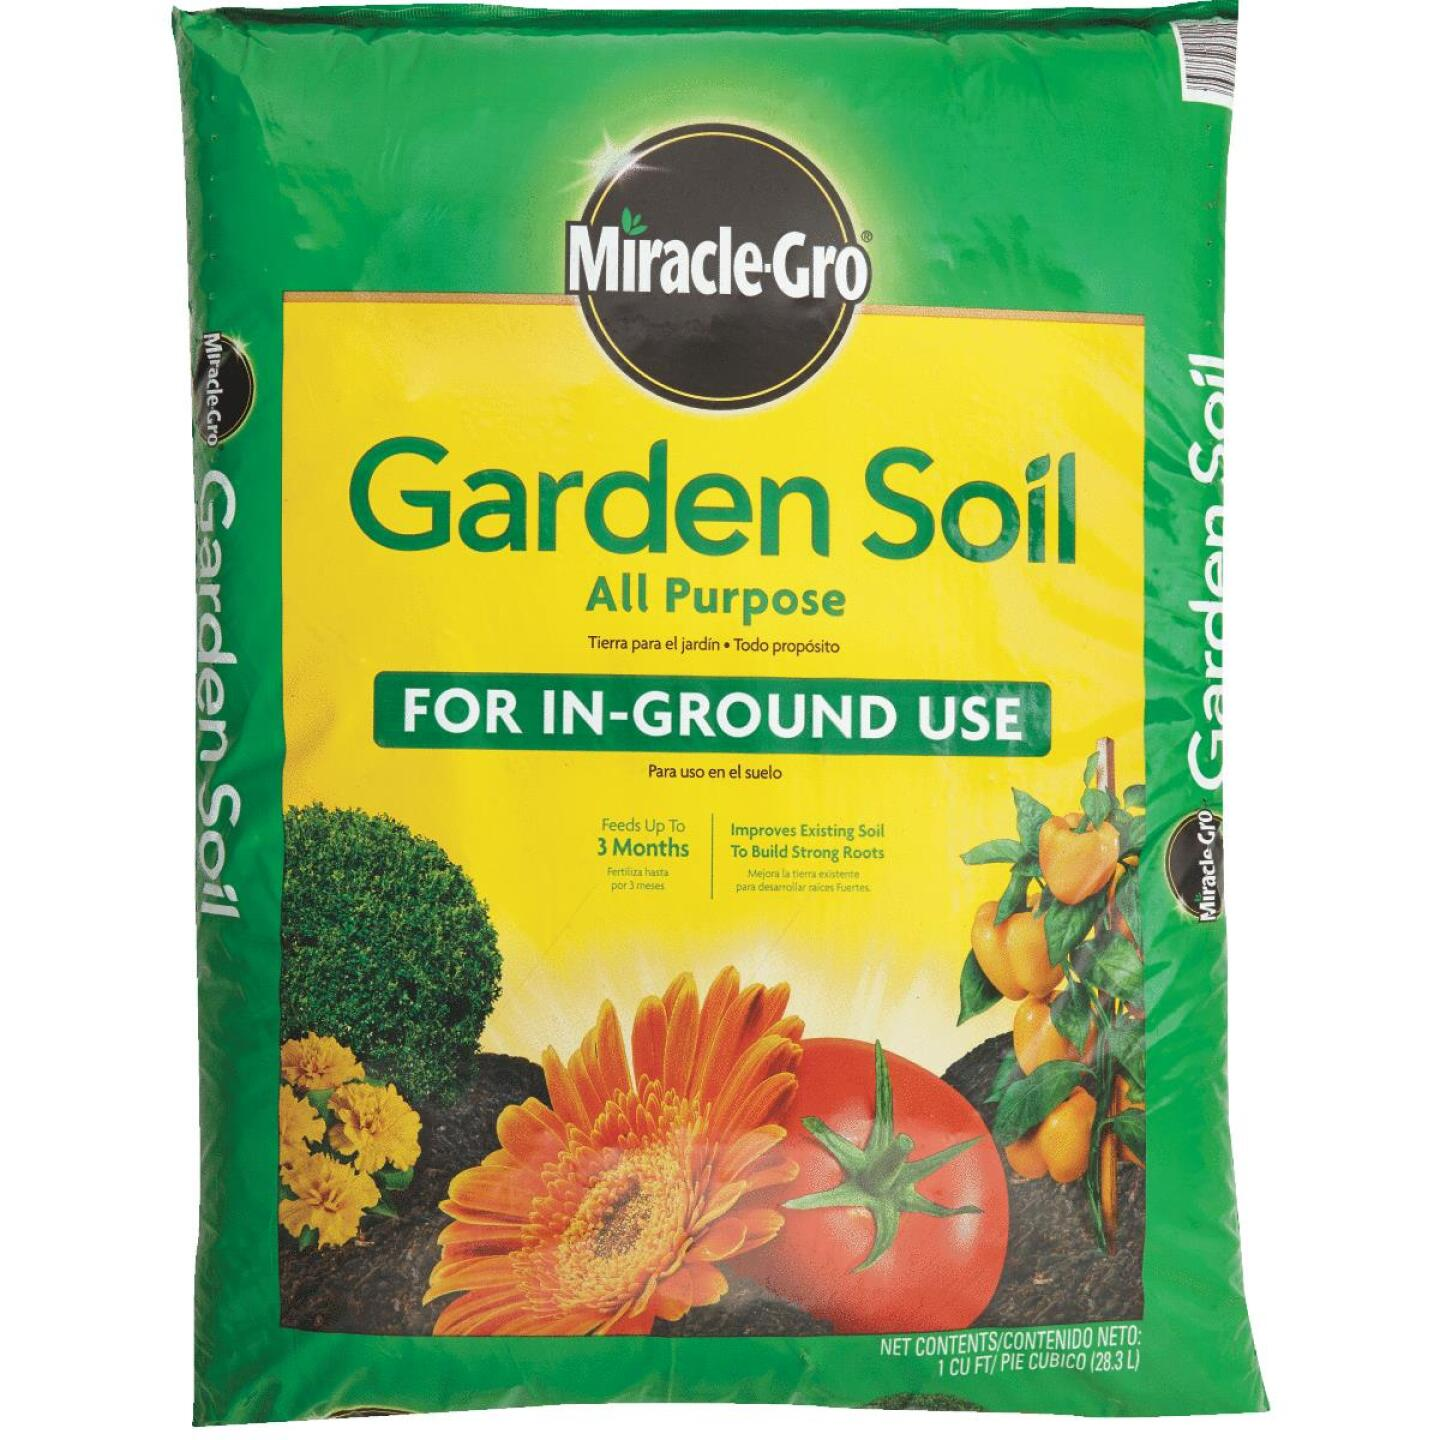 Miracle-Gro 1 Cu. Ft. All Purpose Garden Soil Image 2